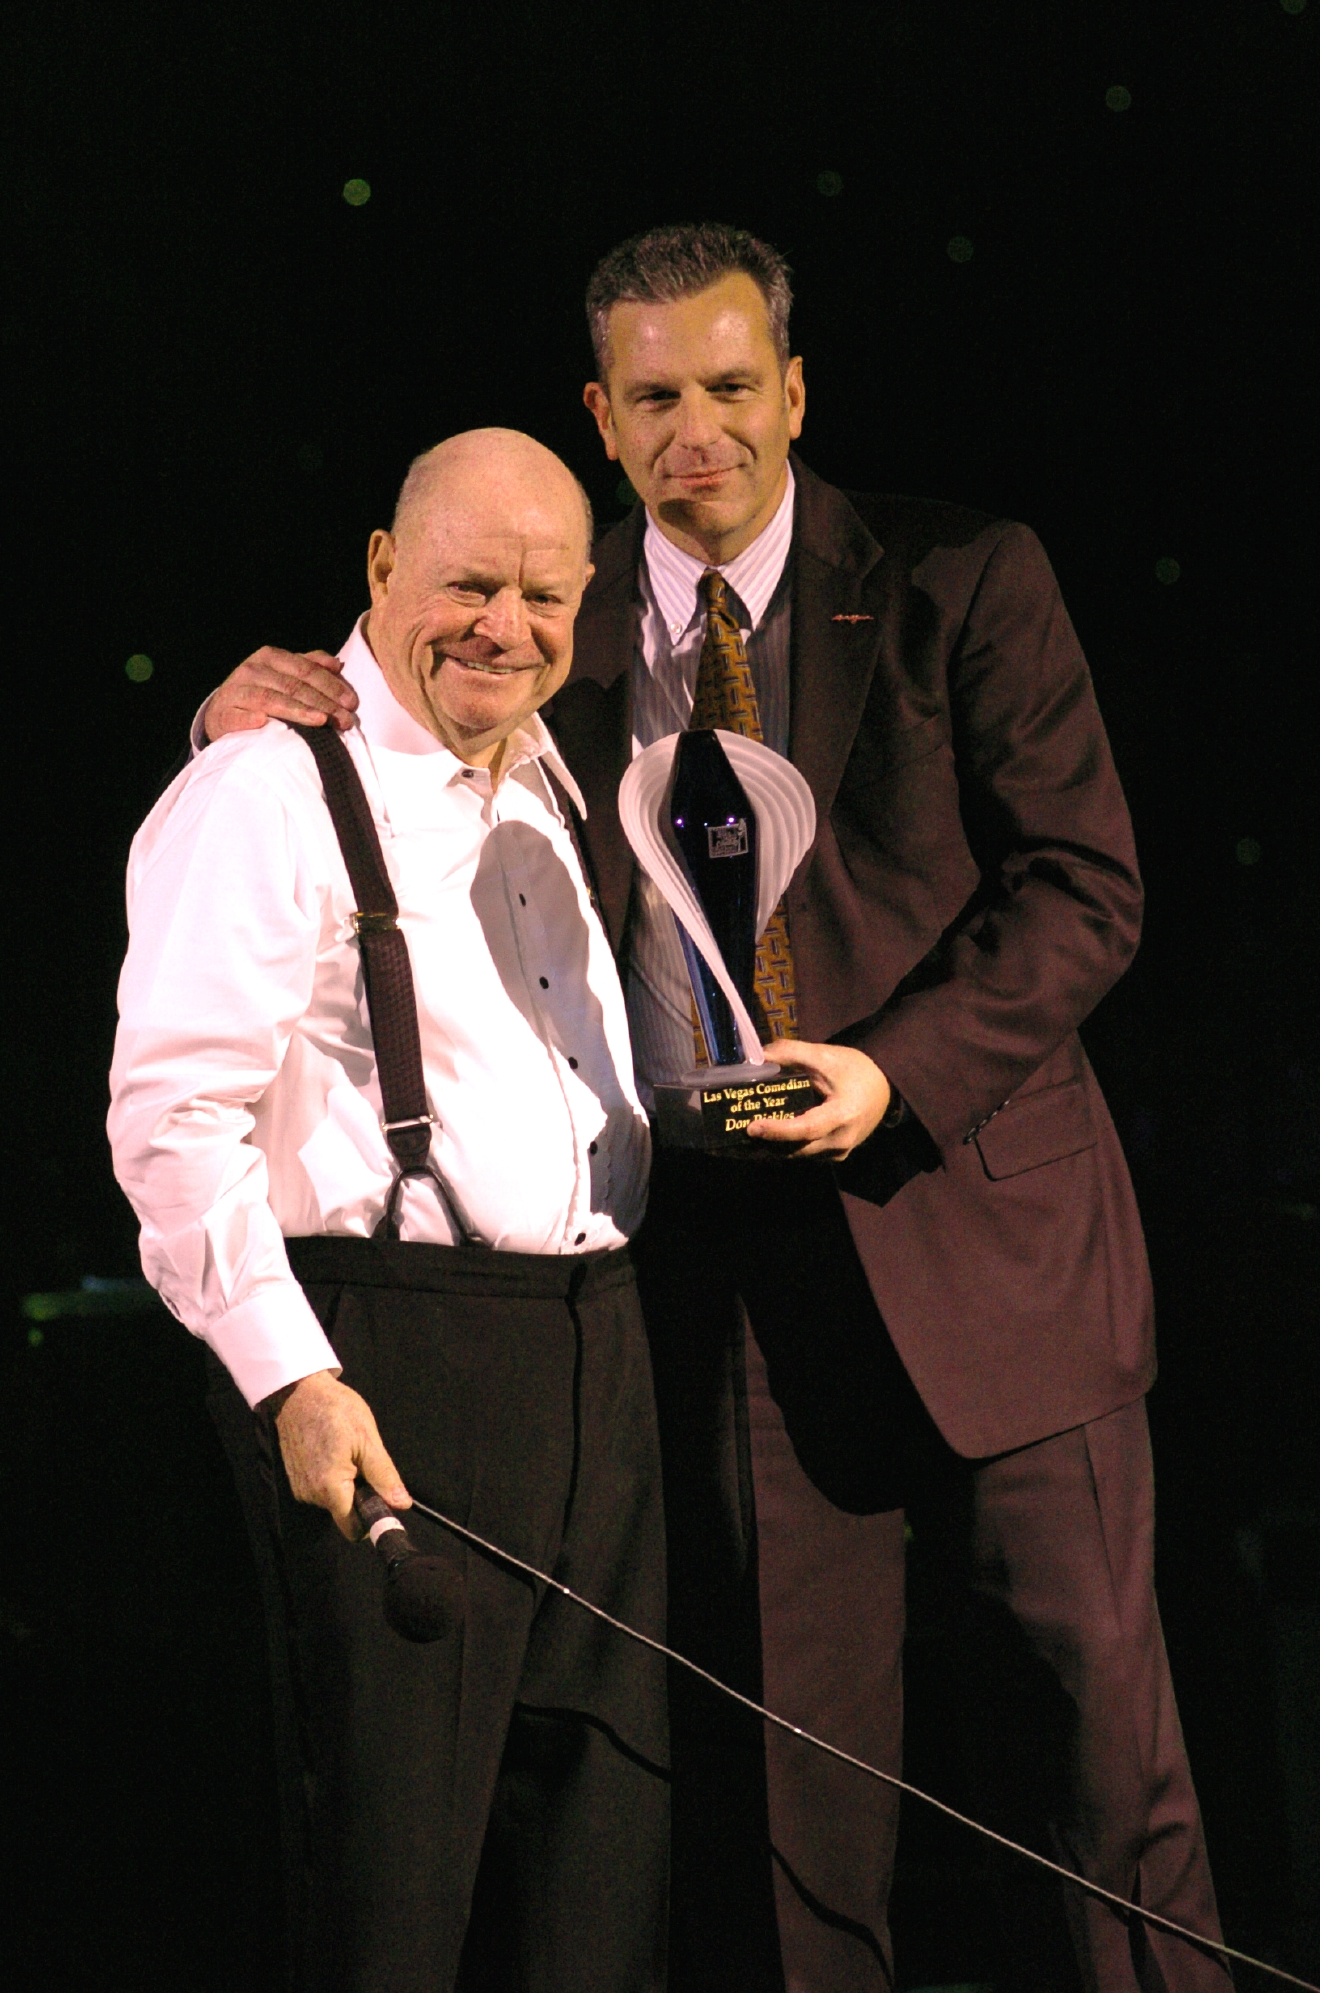 Don Rickles receives Las Vegas Comedian of the Year award from Rob Powers at the Stardust on Oct. 14, 2004. [Las Vegas News Bureau file photo]